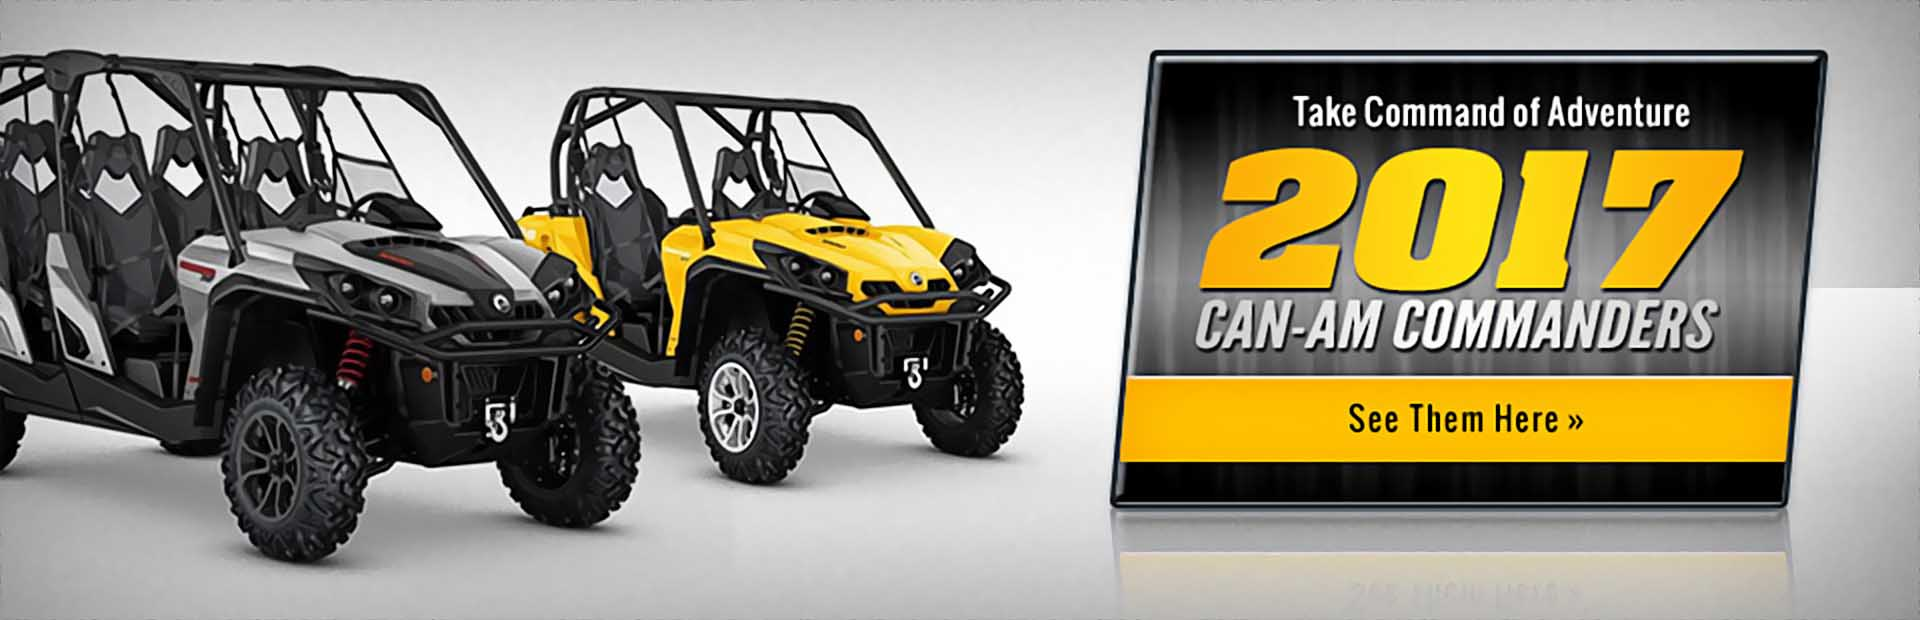 2017 Can-Am Commanders: Click here to view the models.